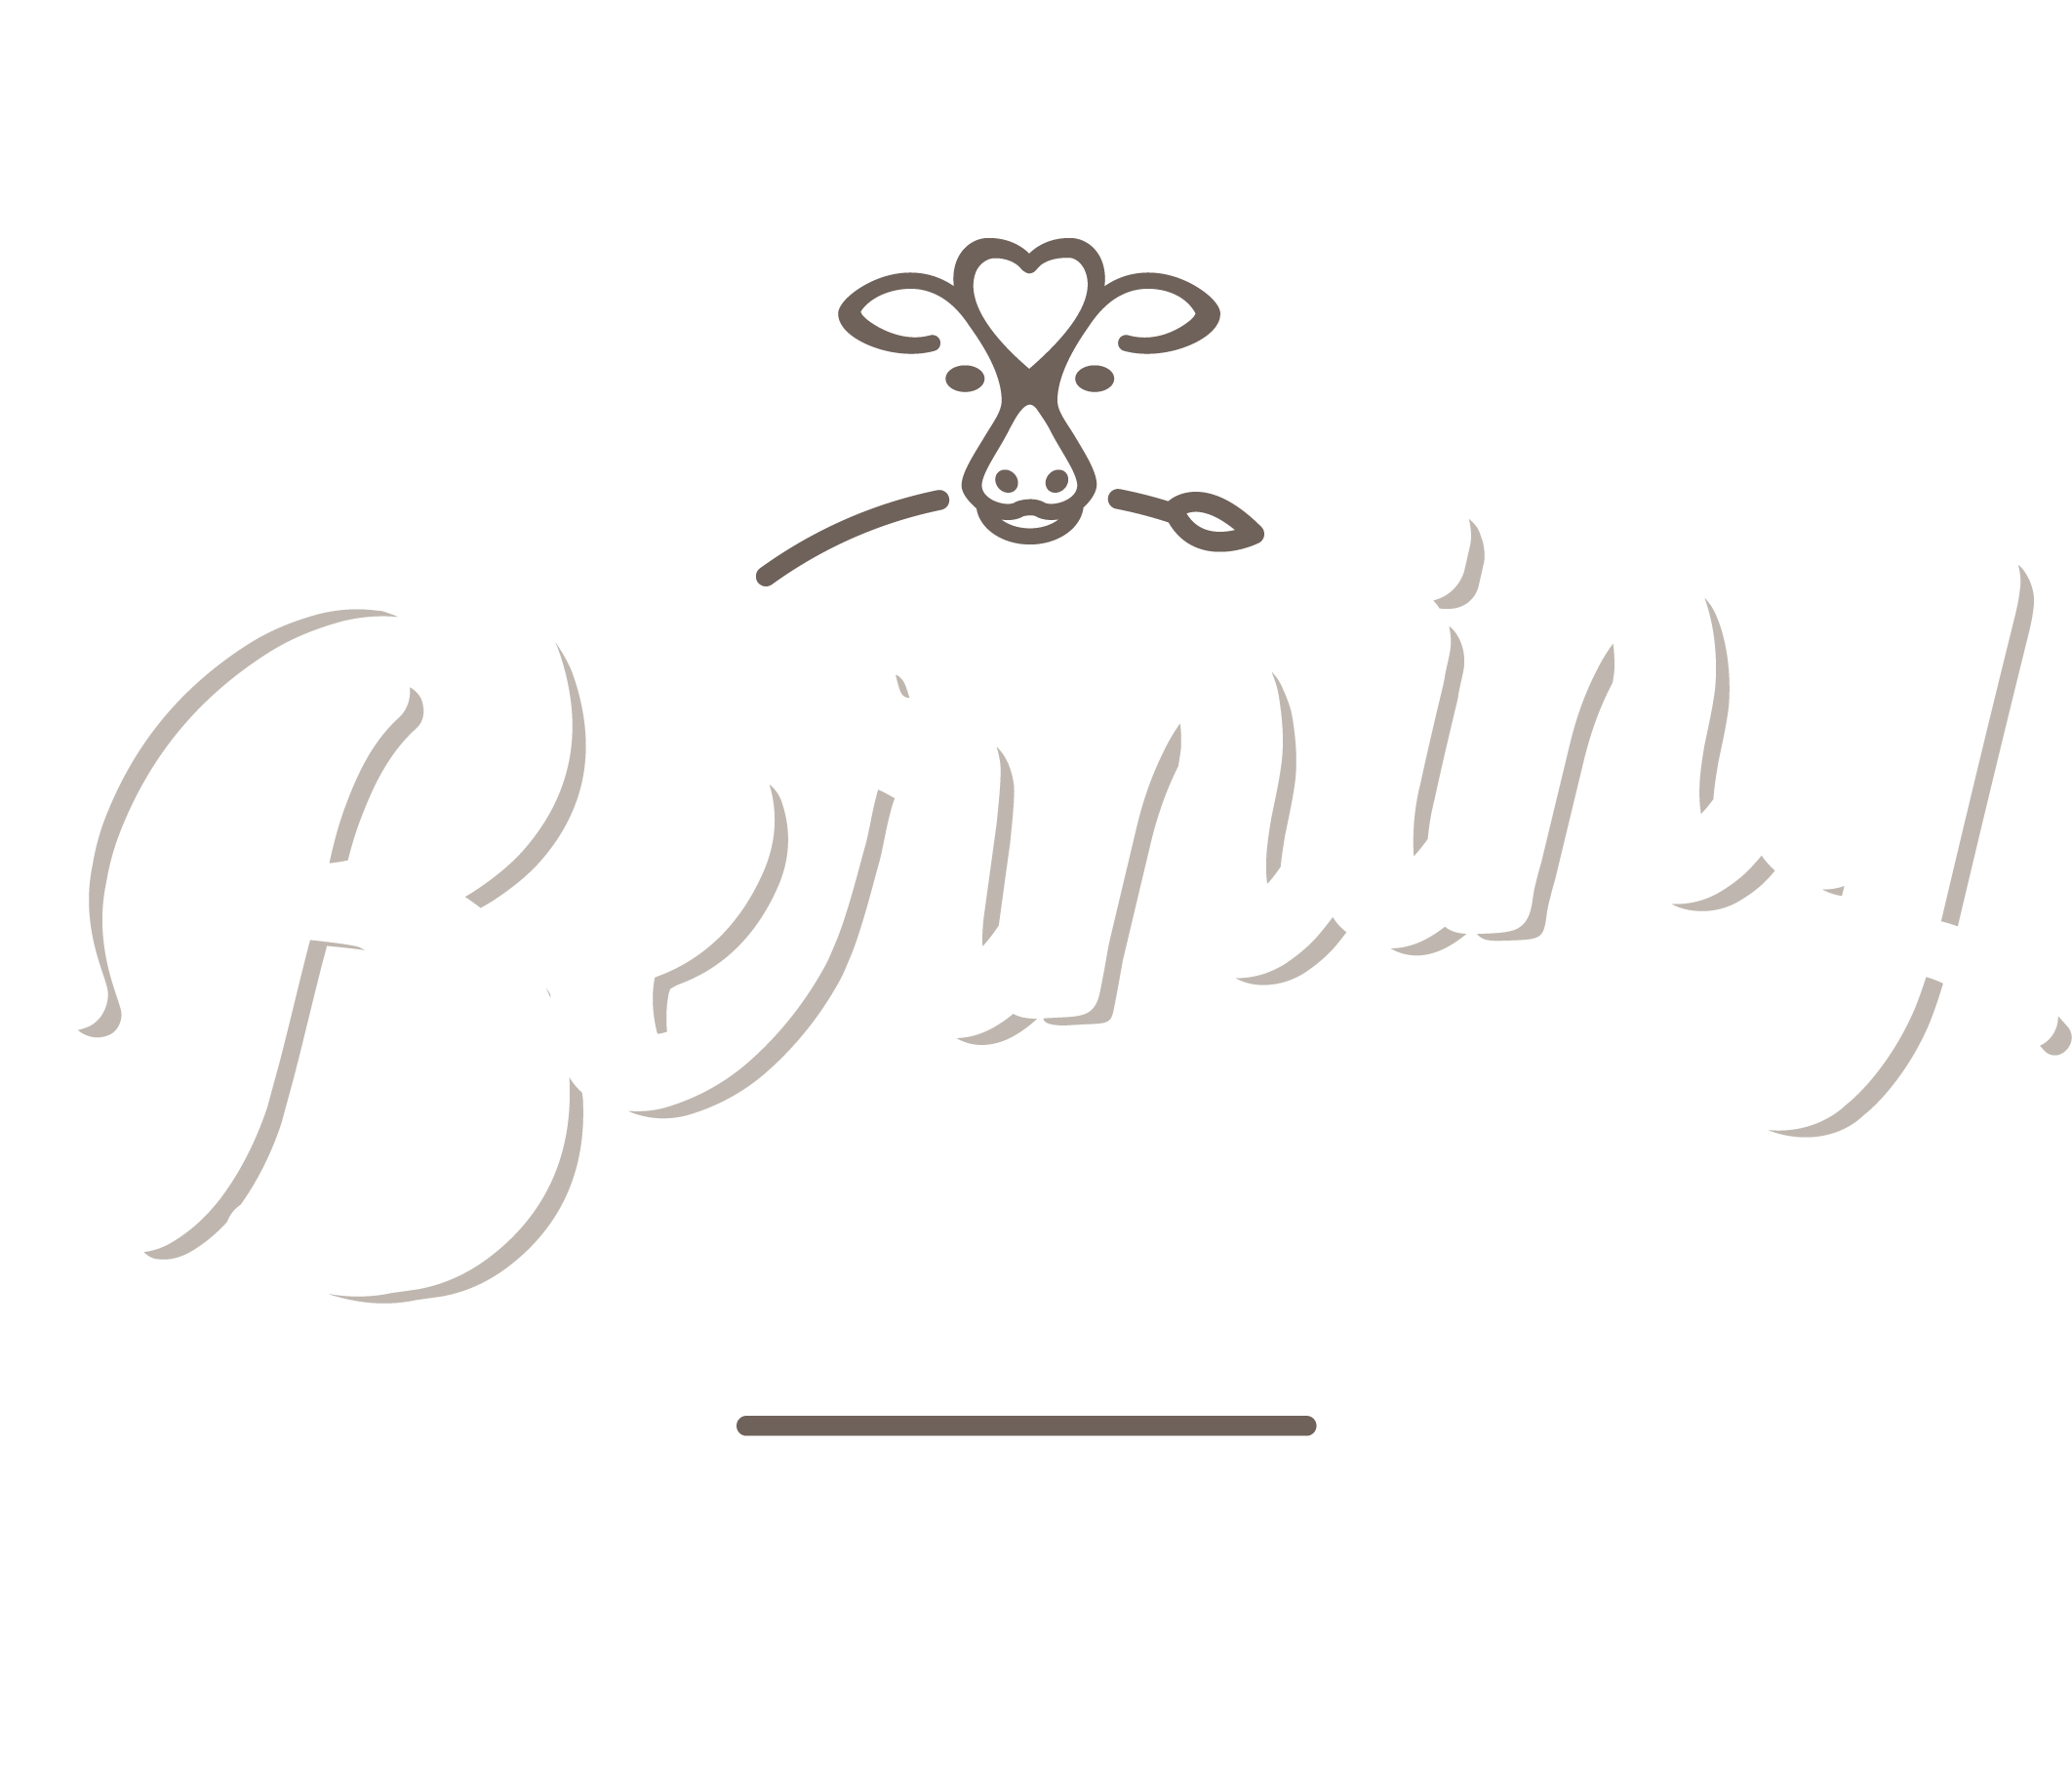 Berning Acres : A family-owned dairy farm located in Menominee, IL.